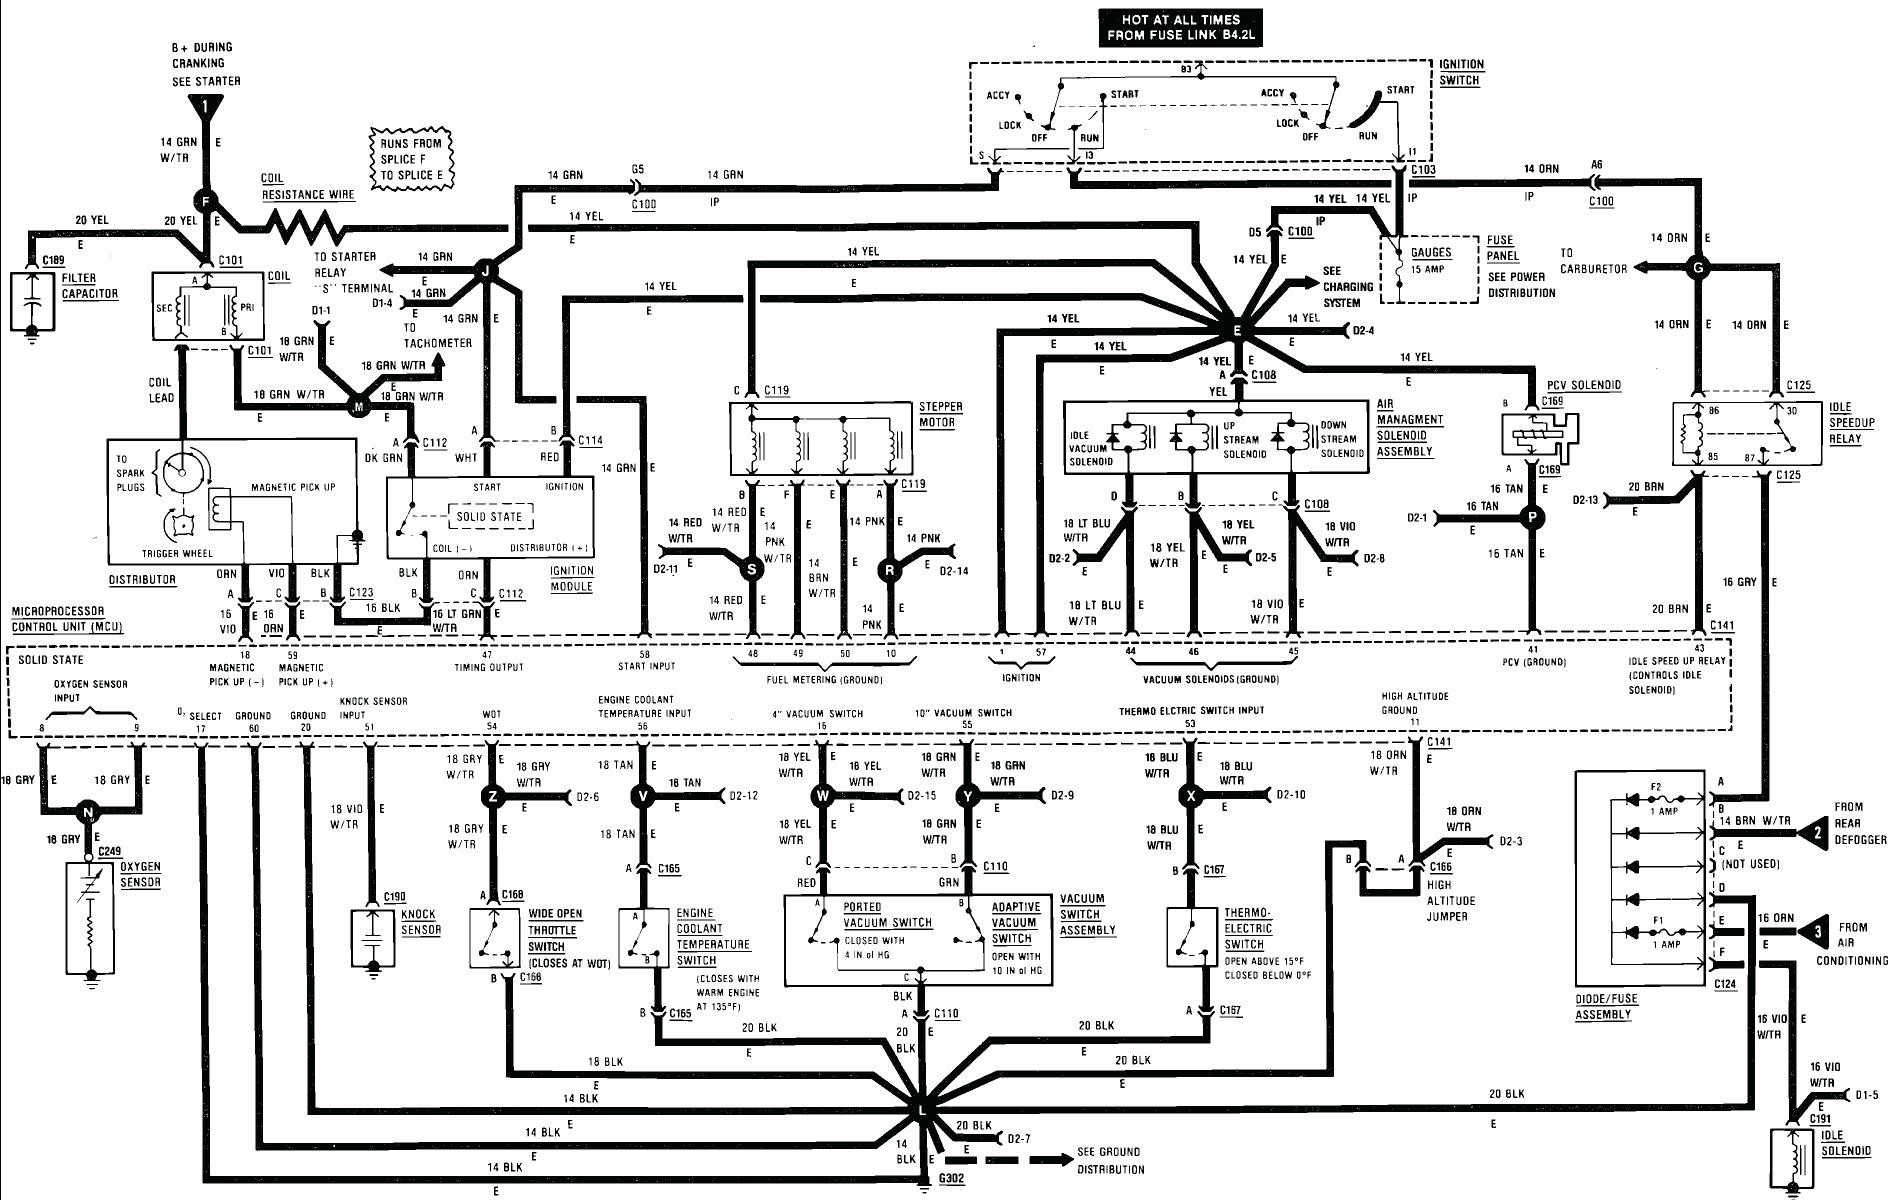 DIAGRAM] 2007 Jeep Jk Wiring Diagram FULL Version HD Quality Wiring Diagram  - VENNDIAGRAMTIKZ.ENERCIA.FRWiring And Fuse Image